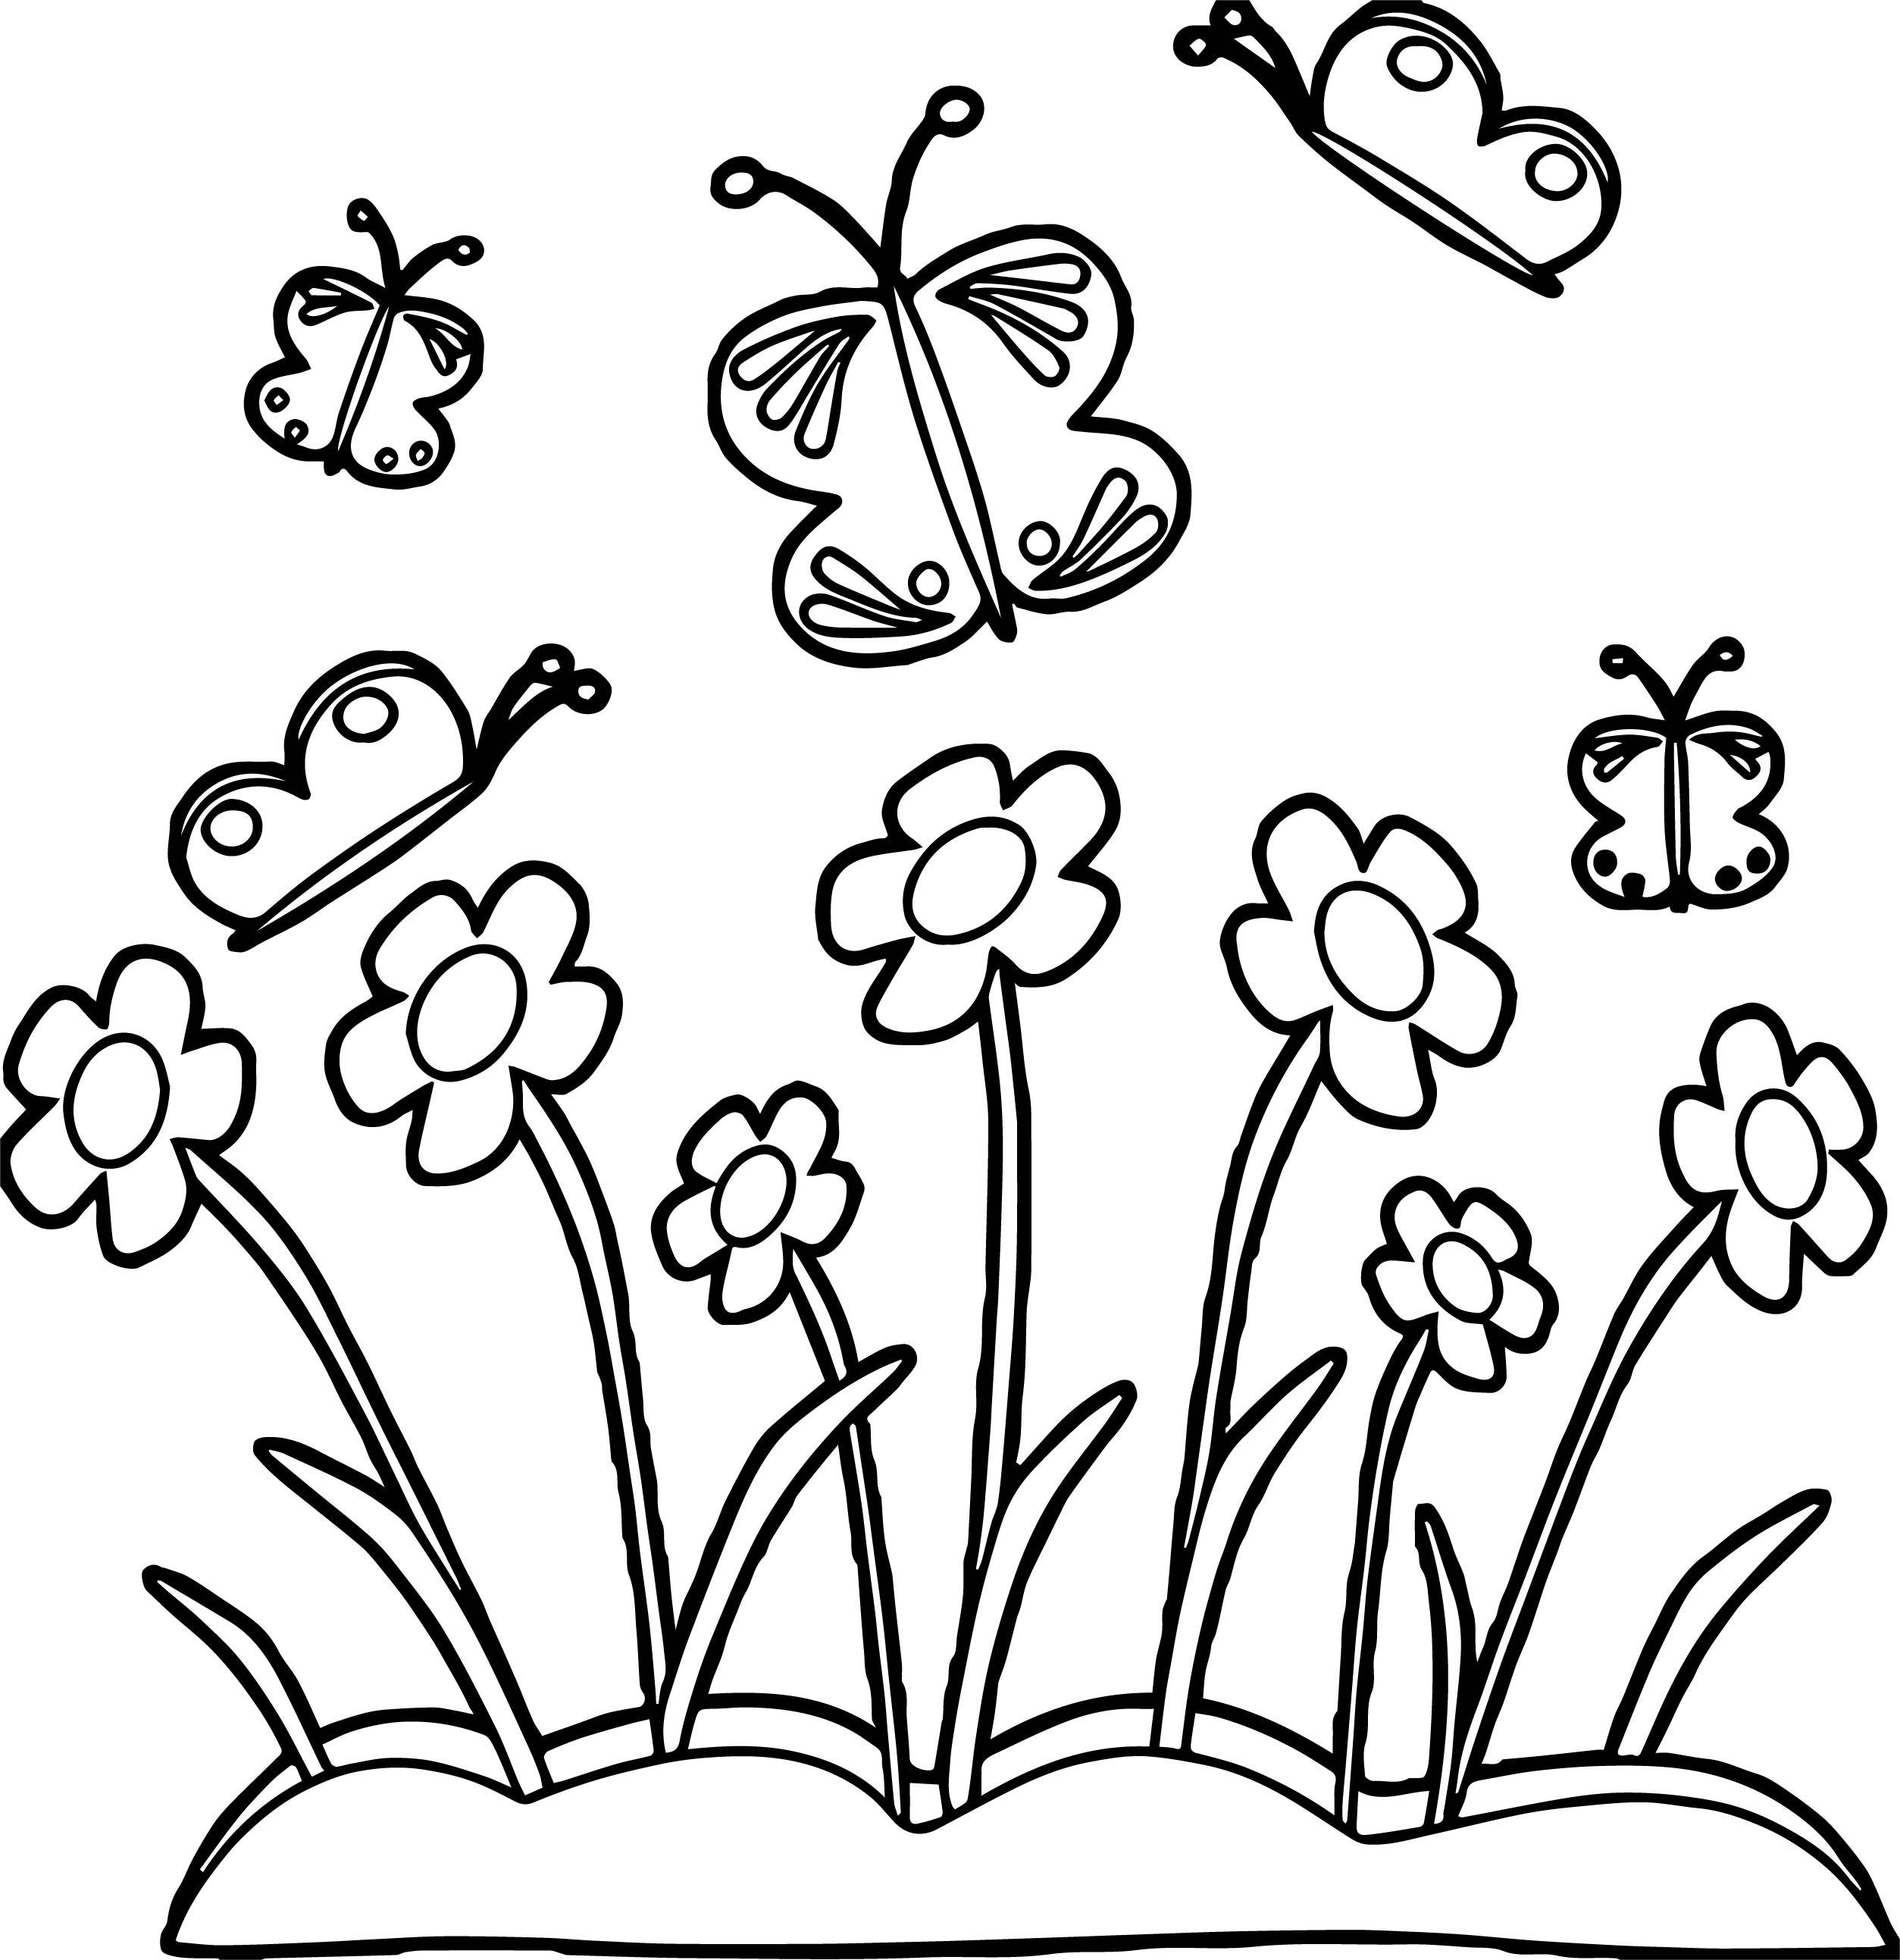 2507x2586 Marvelous Spring Flower Border And Butterflies Coloring Page Image